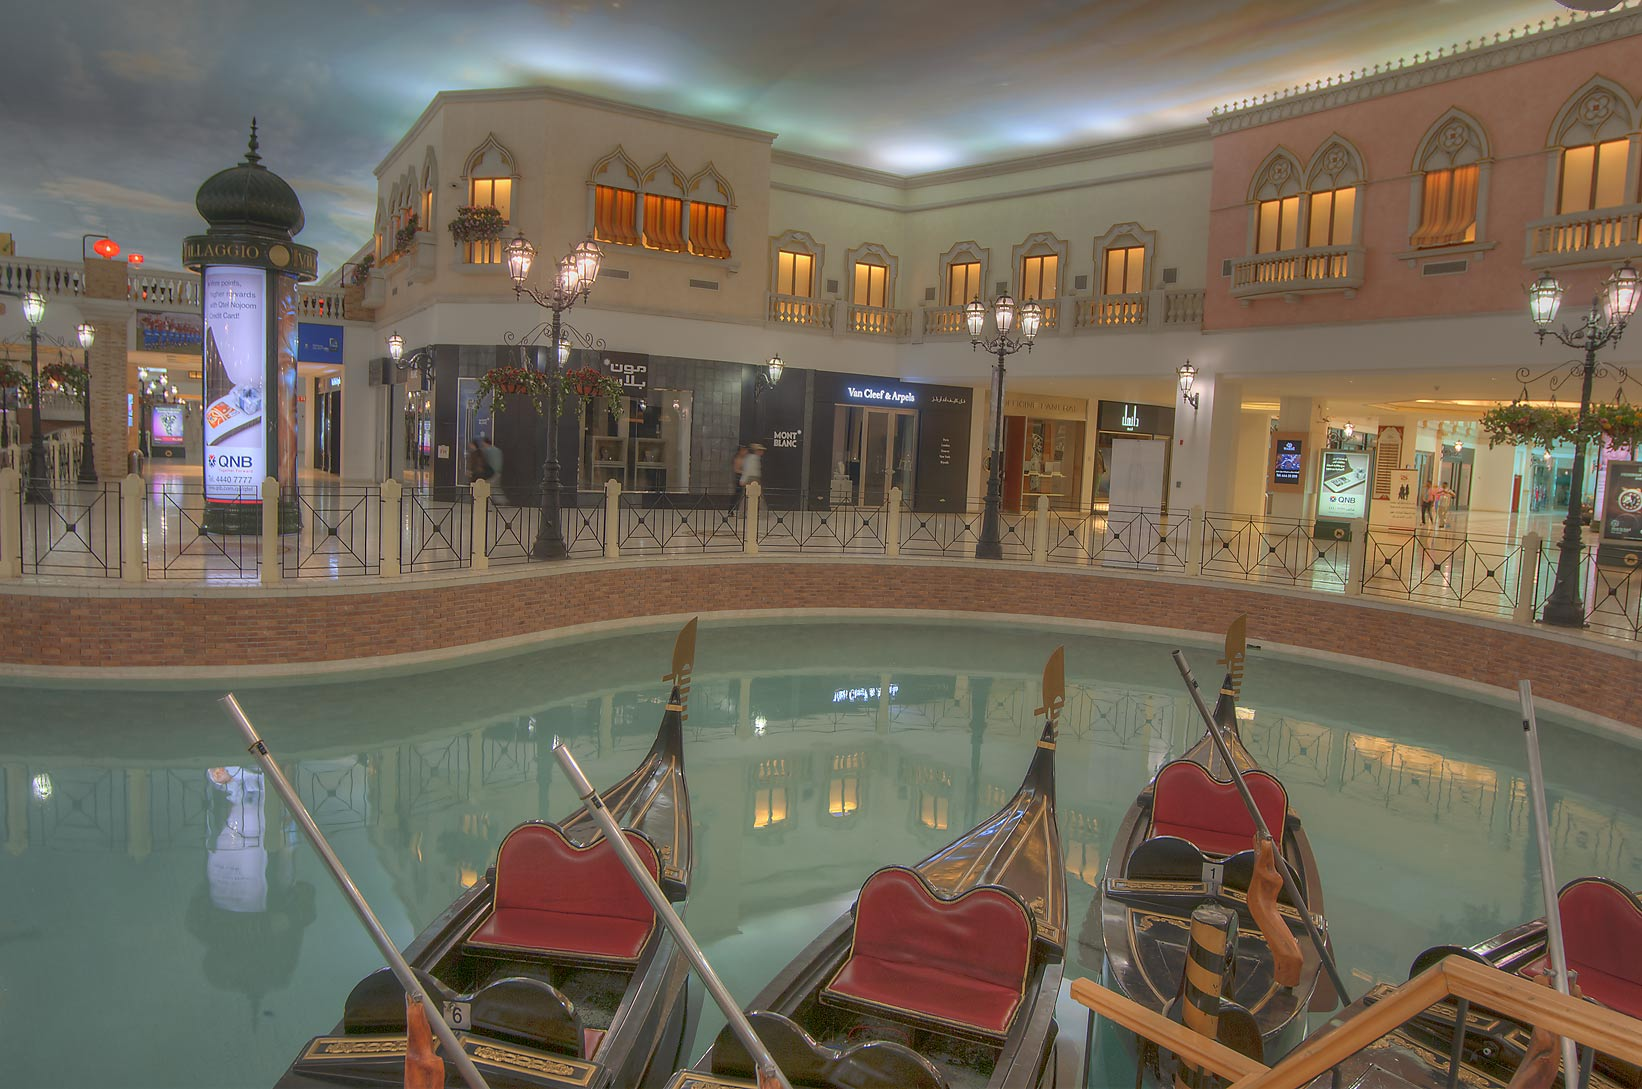 Gondola boats in a canal in Villagio shopping mall in Aspire Zone. Doha, Qatar